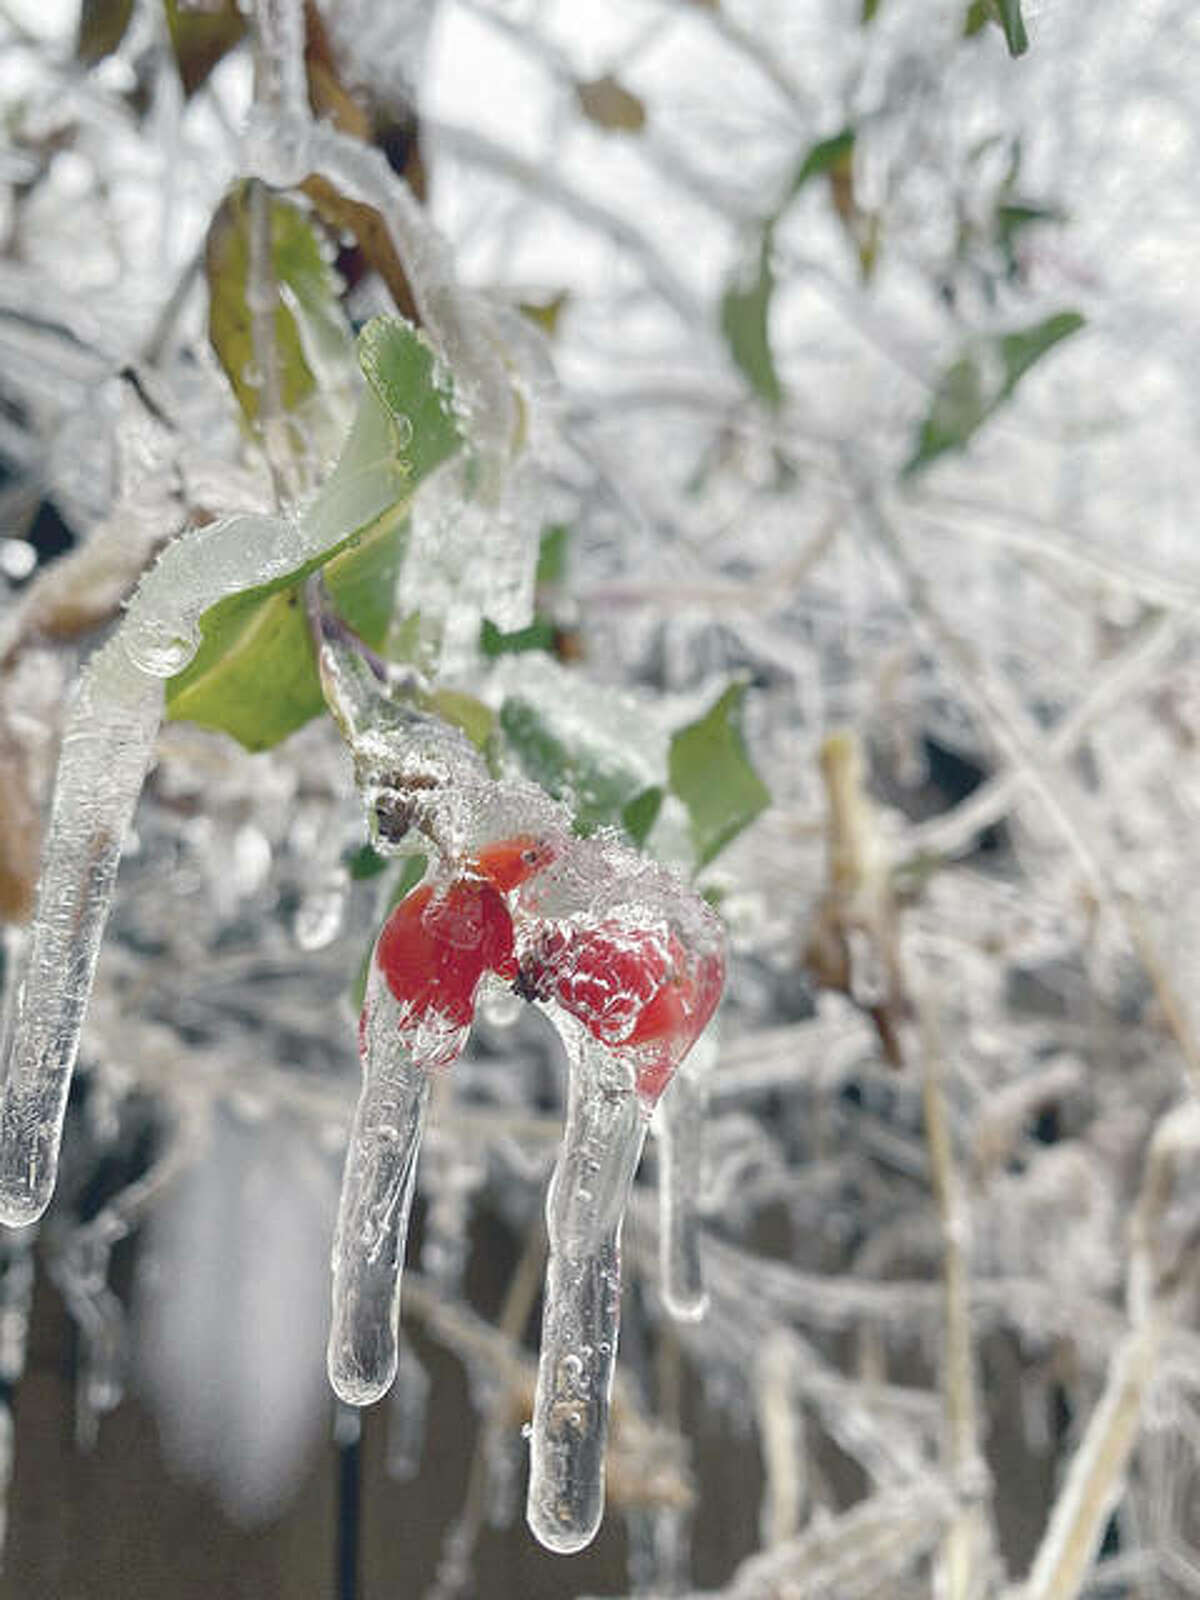 Icicles droop from ice-encased leaves on a tree. A new year's storm left much of west-central Illinois coated in a layer of ice and a dusting of snow. More reader photos are available inside today's newspaper and also online.